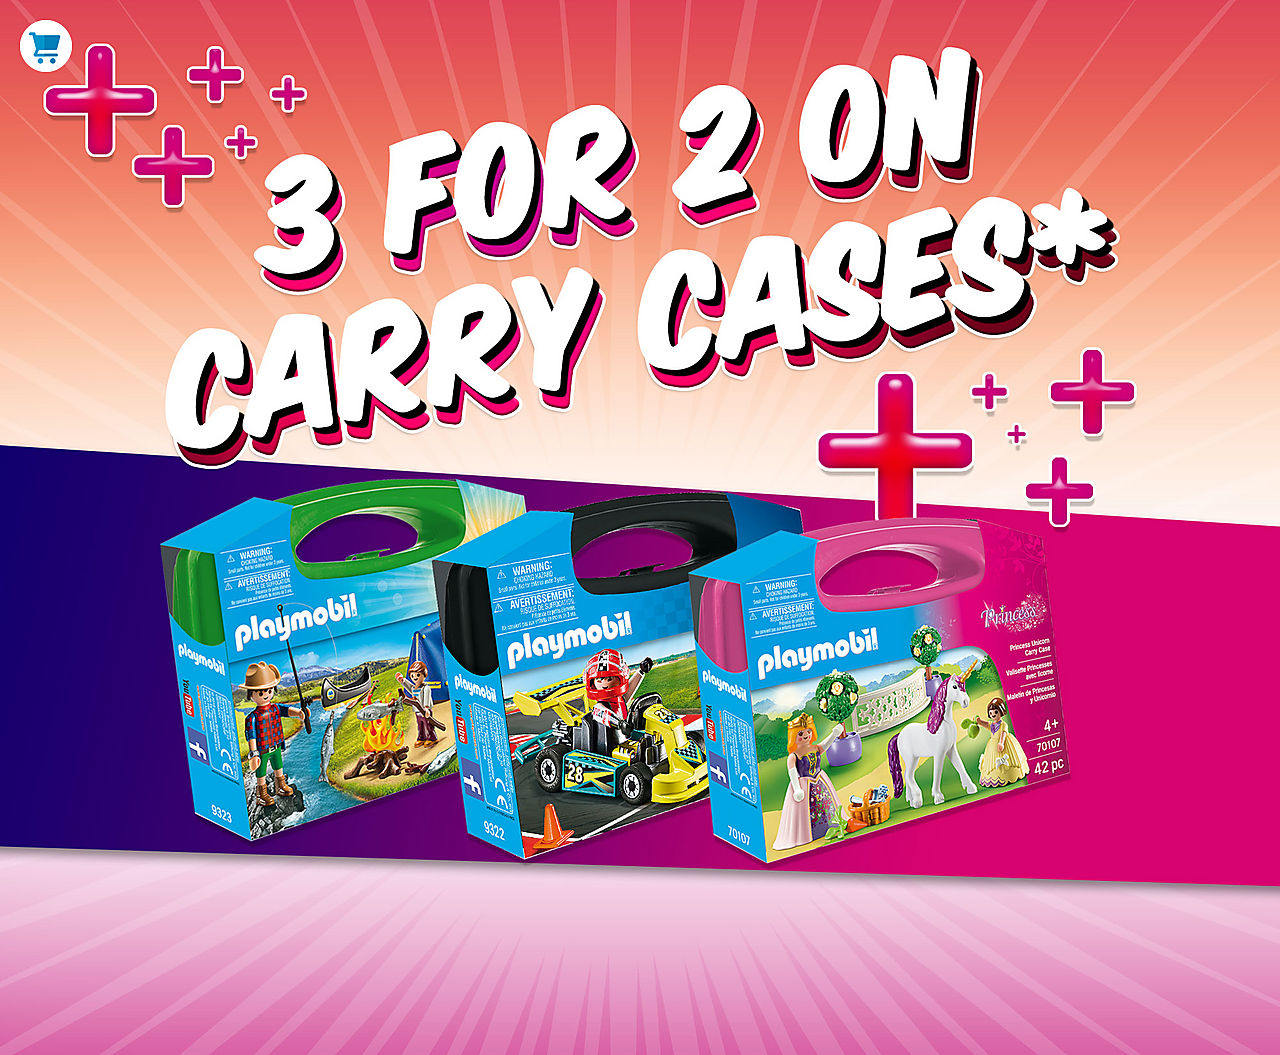 3 for 2 on carry cases